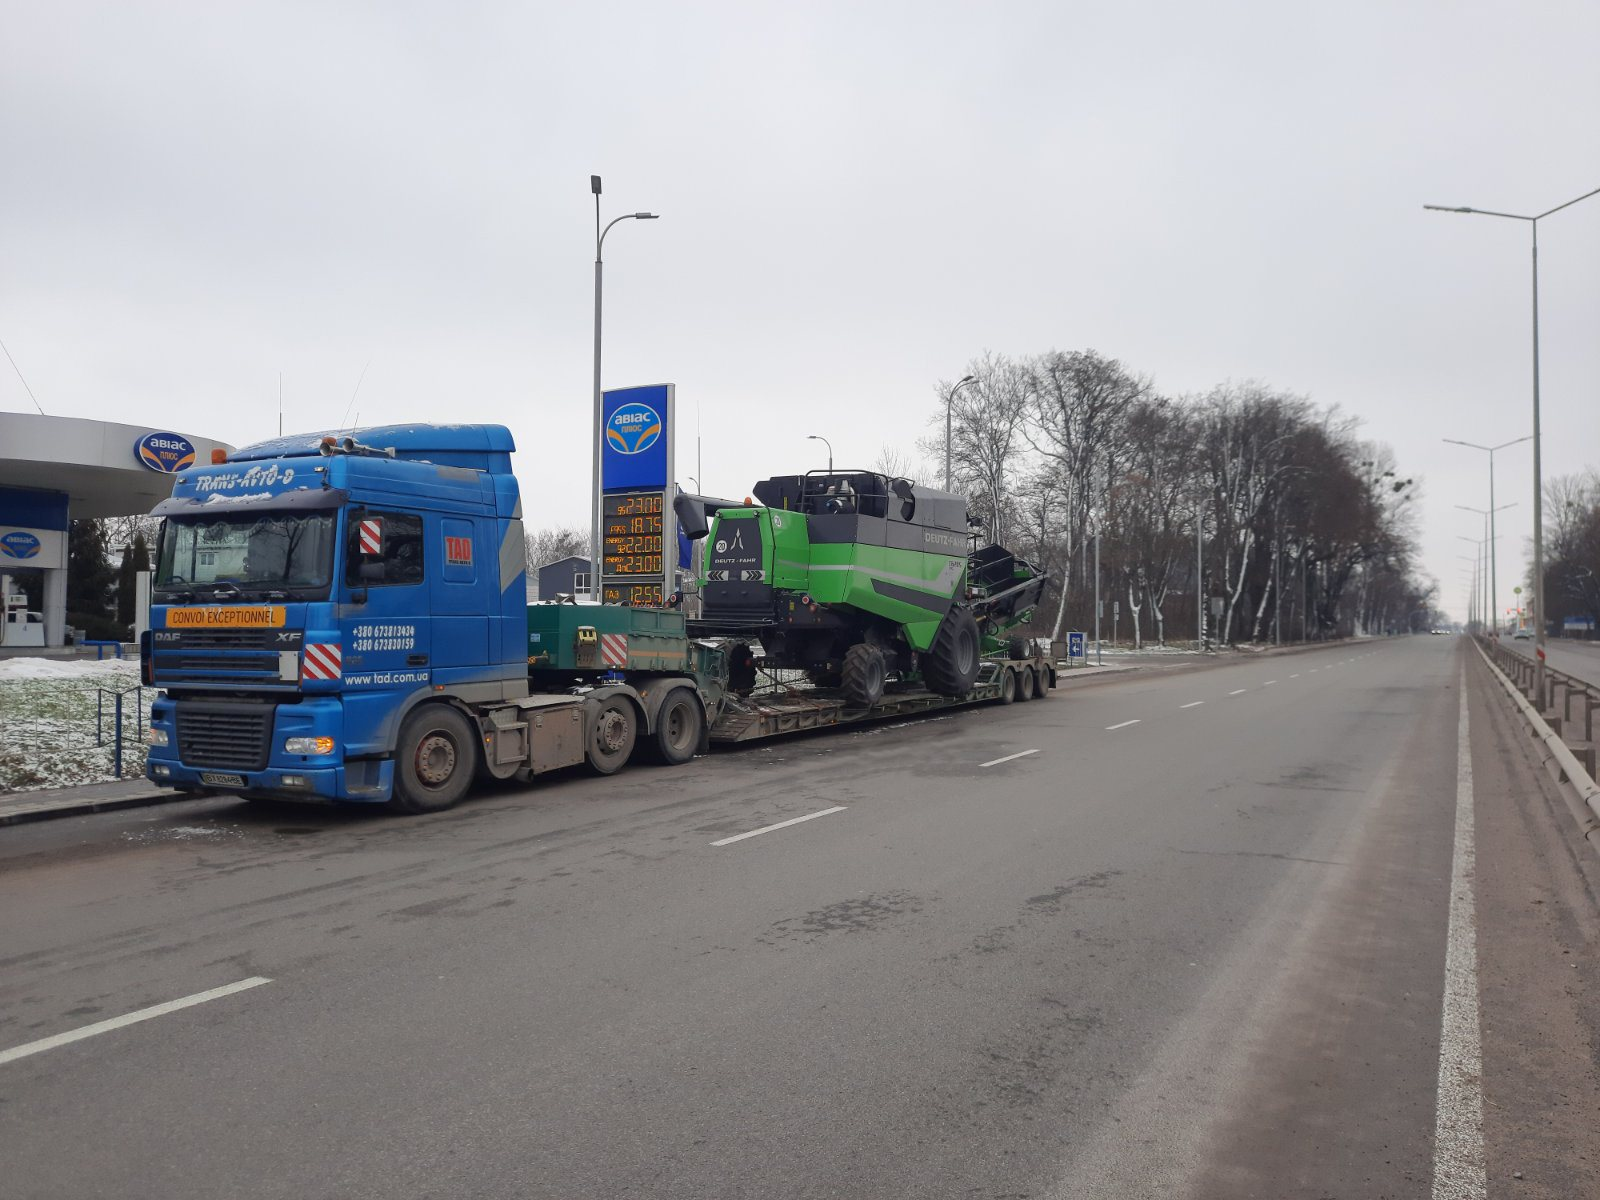 Transportation of the Deutz-Fahr 6205 TS combine across Ukraine